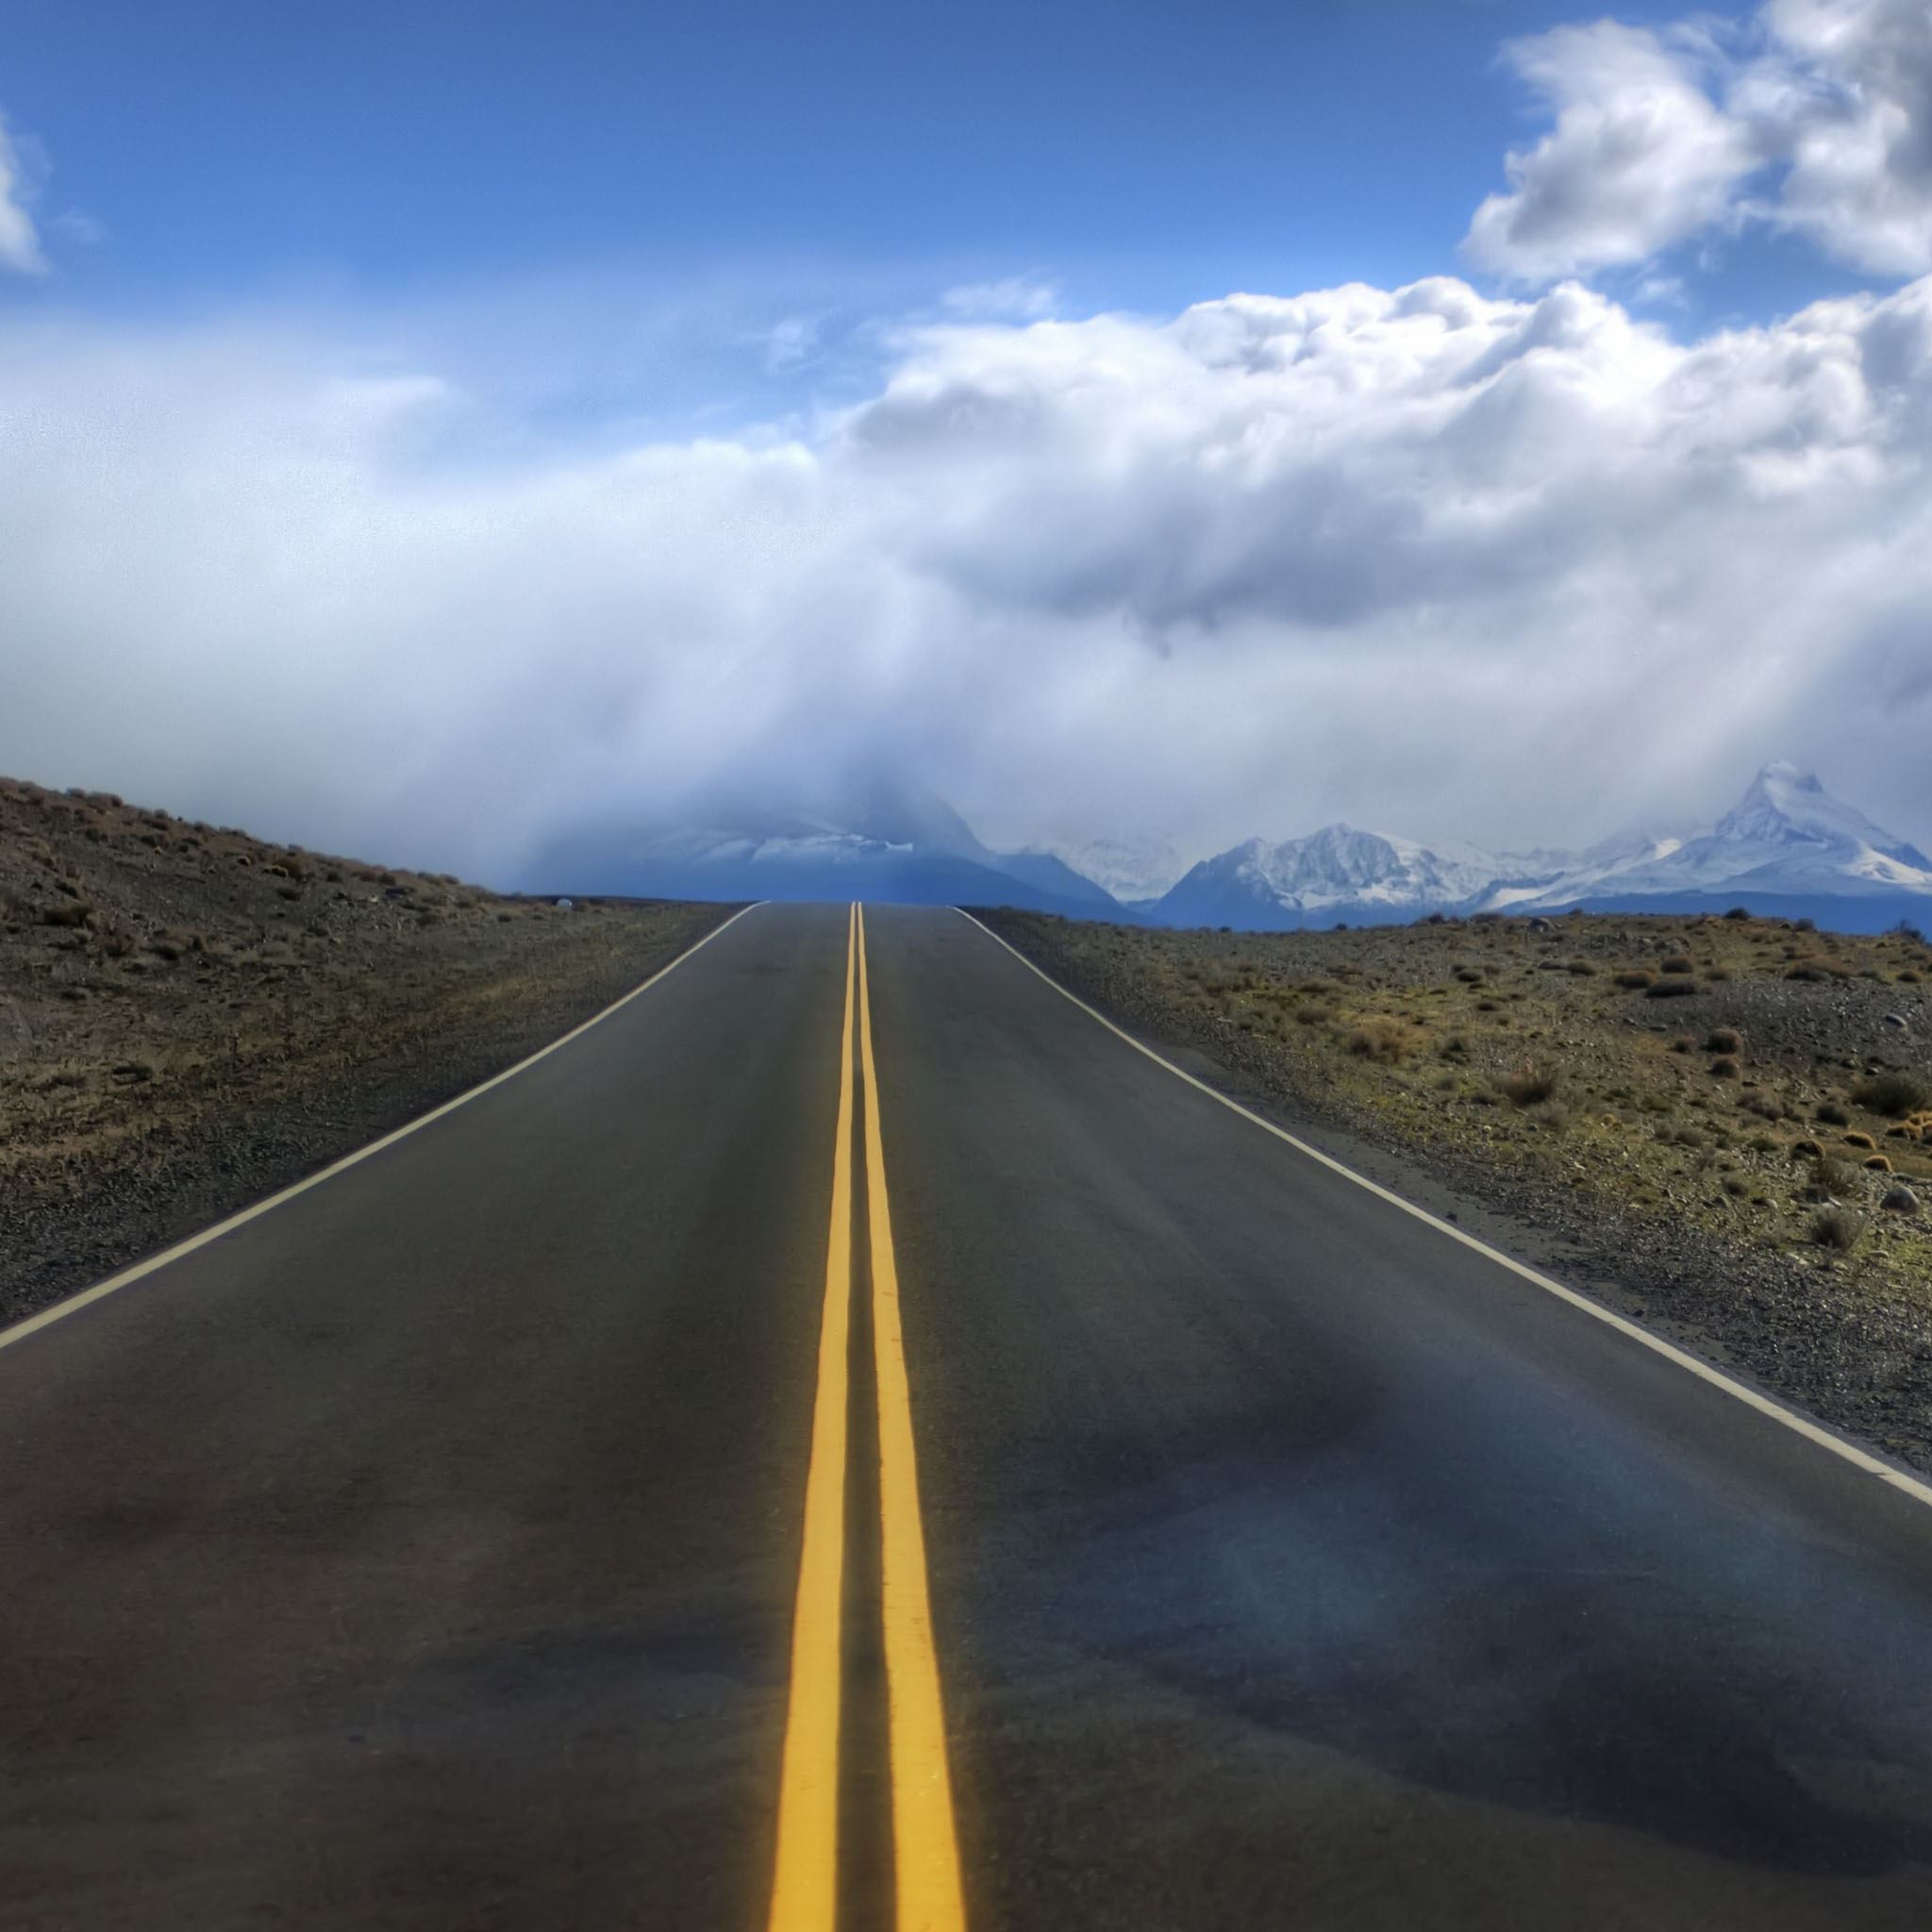 Road in Argentina iPad Air wallpaper